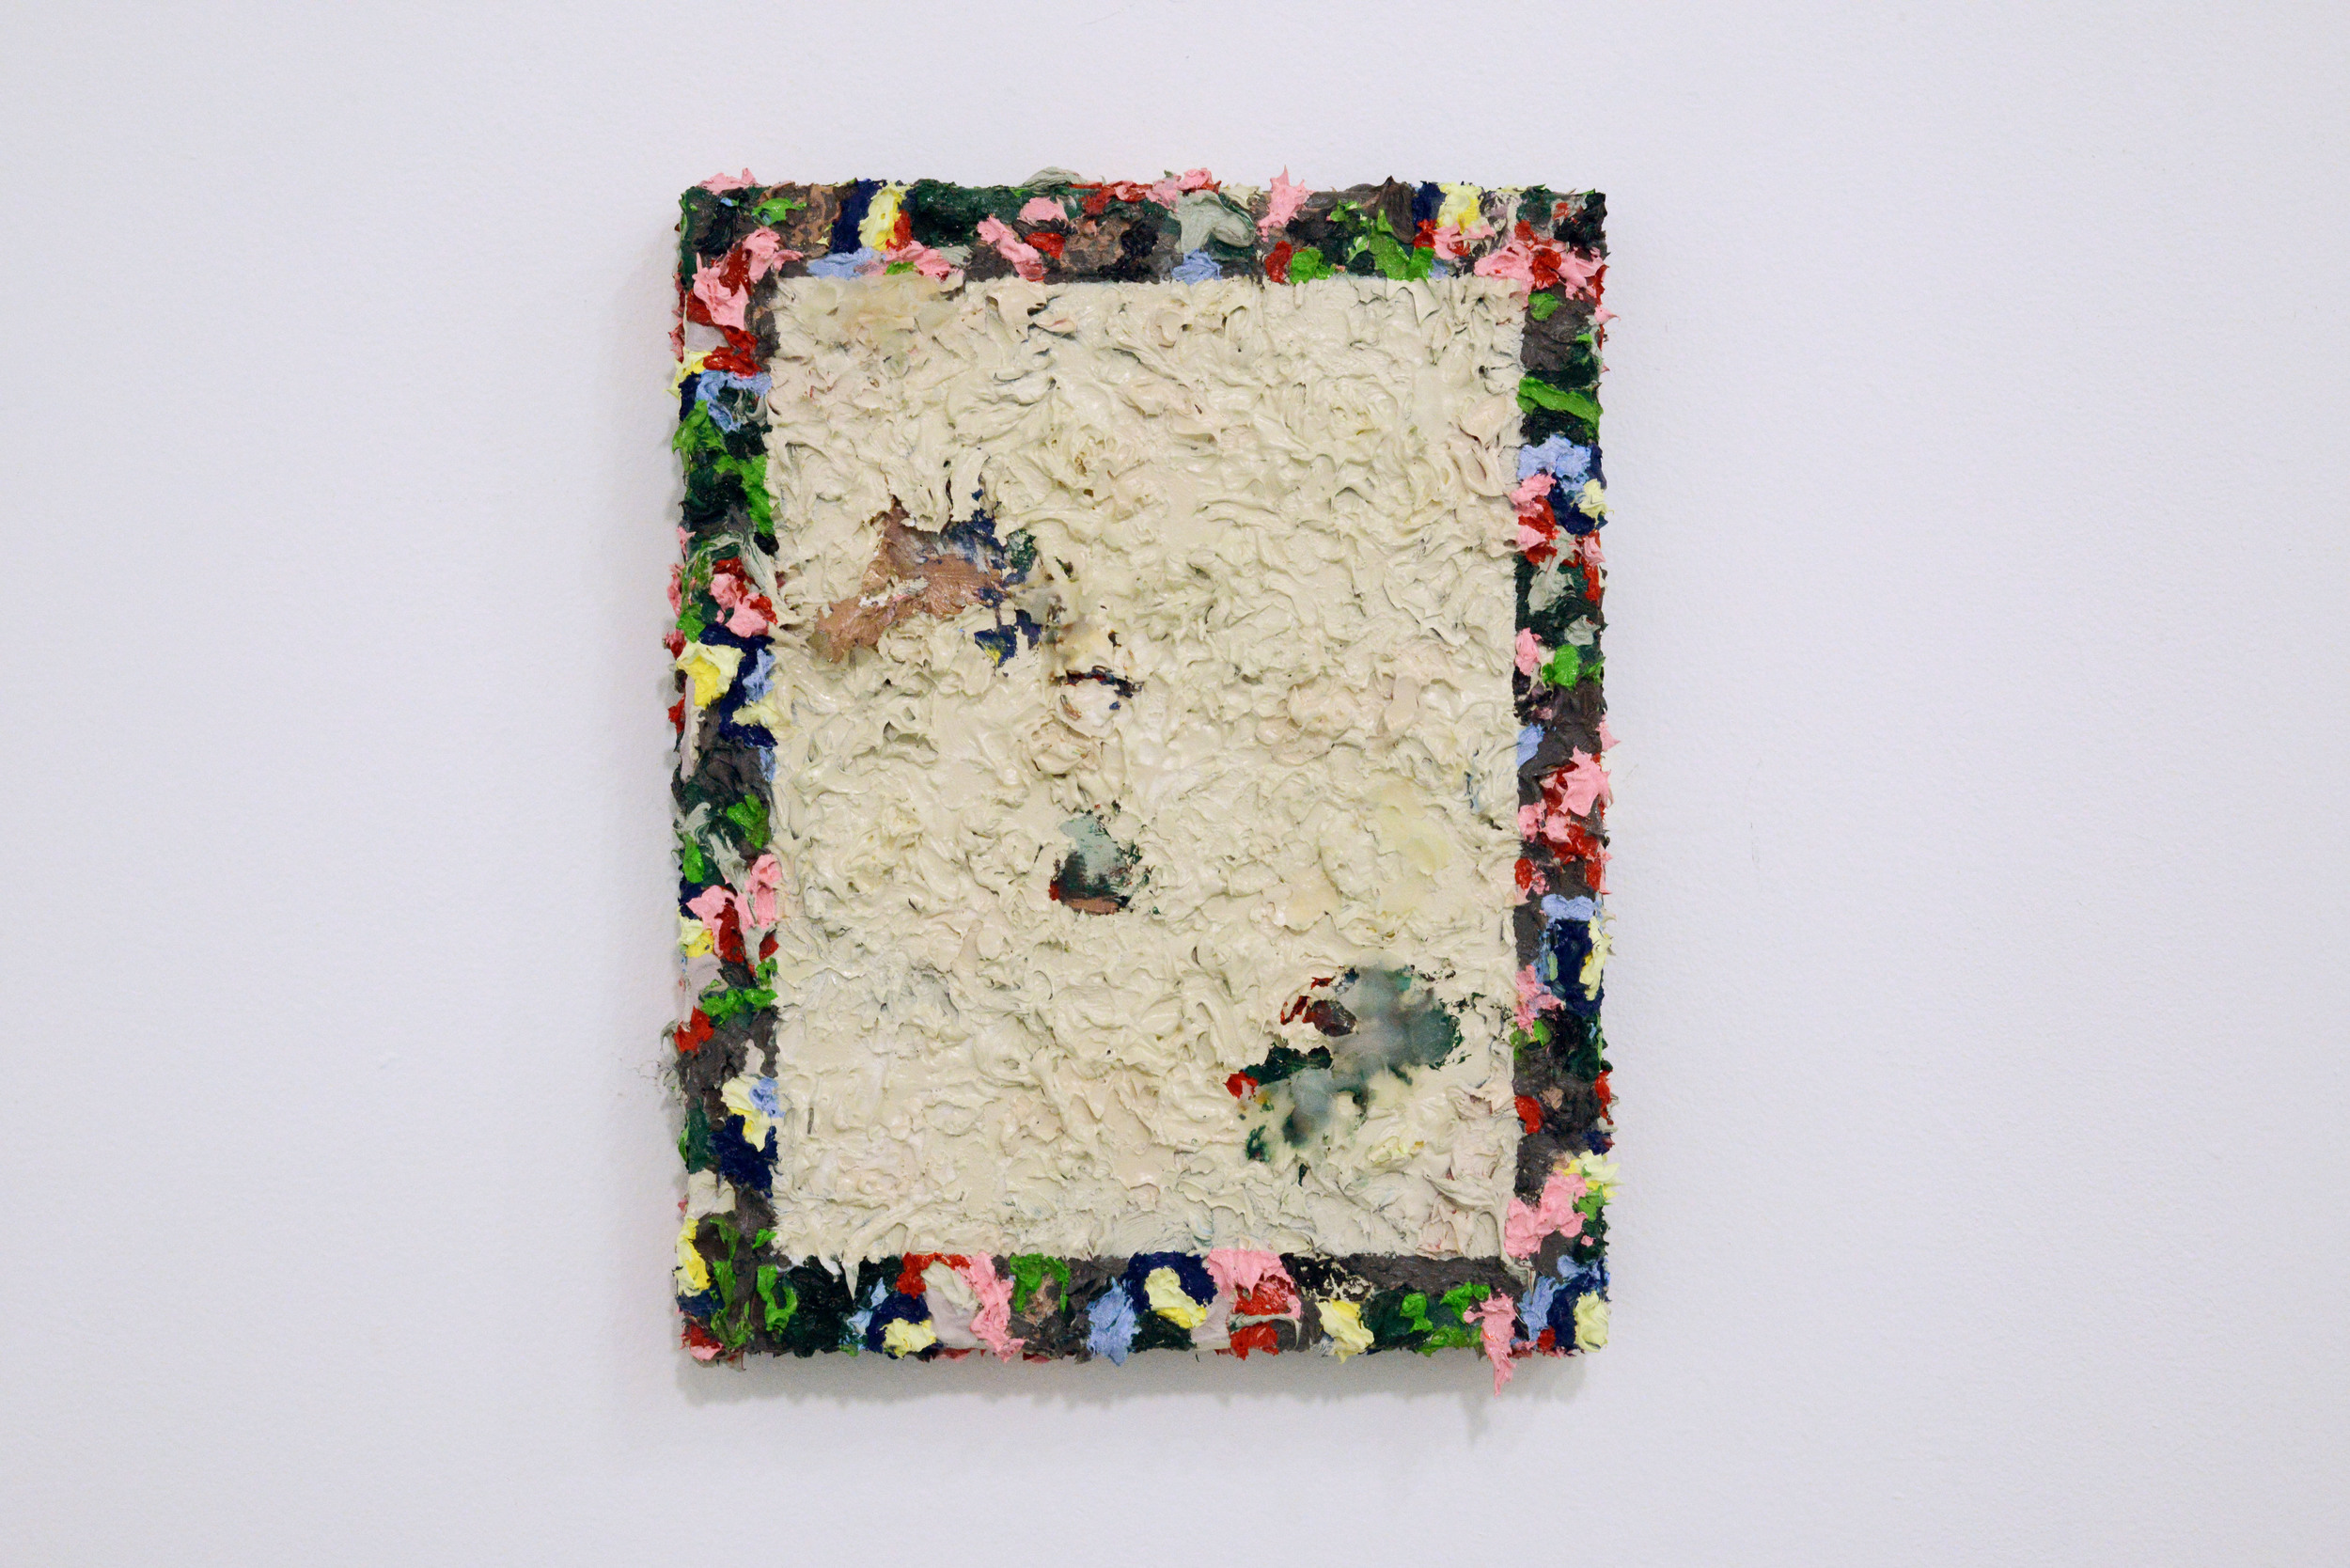 David Anderson   Last Night I Traded My Soul's Innermost For     Some Pickled Fish   Oil, wax, spray paint, on linen  2015